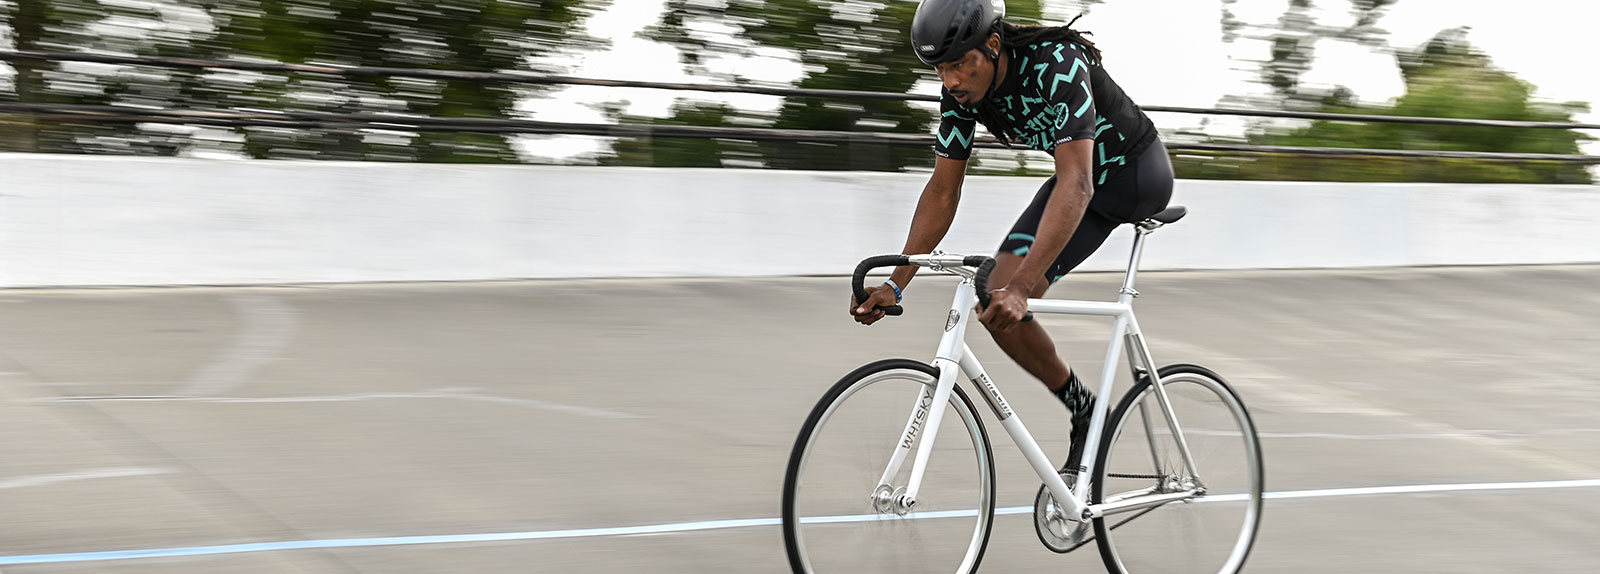 Person riding White All-City Thunderdome bike on a road